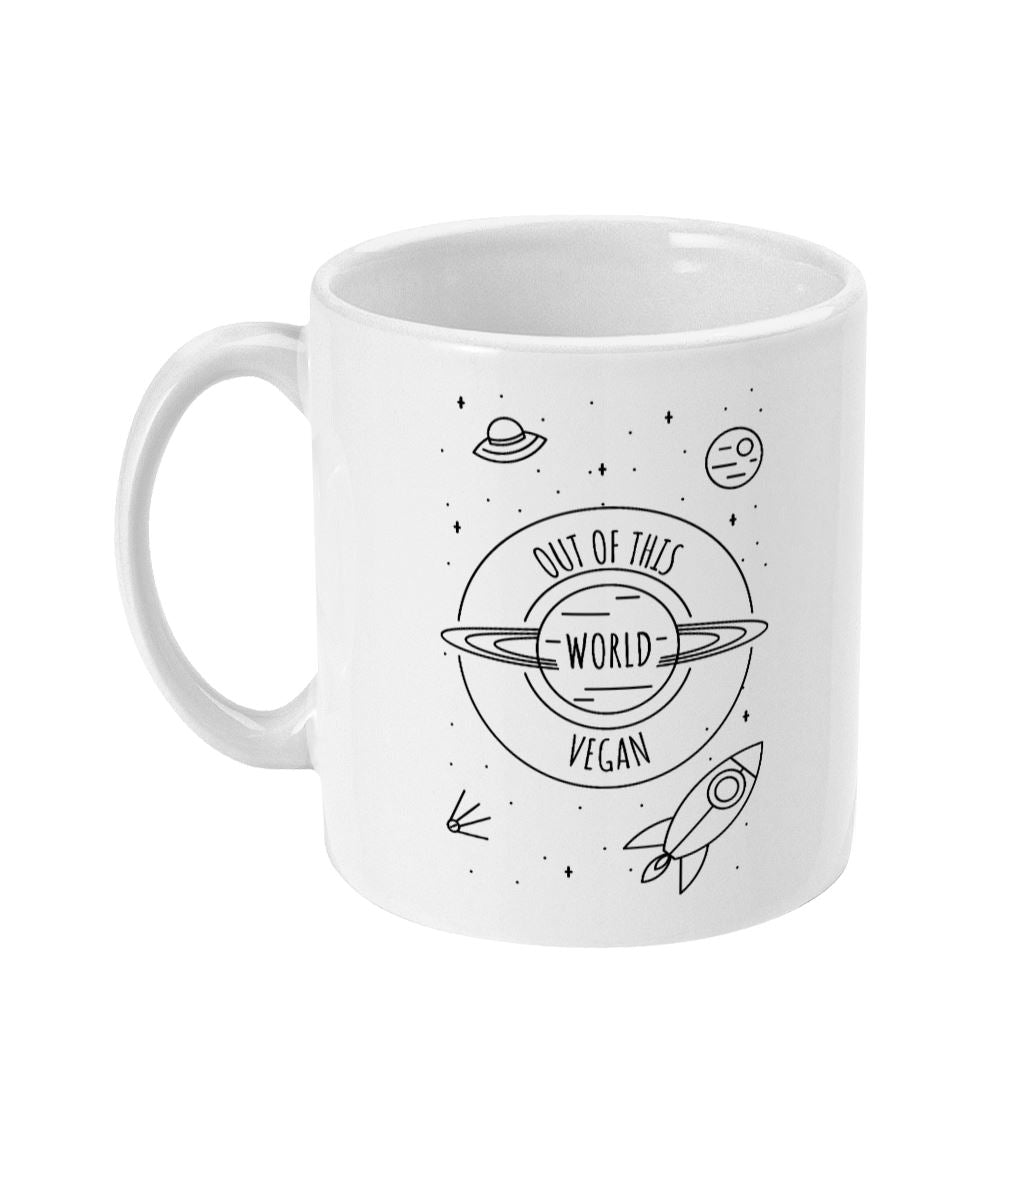 """Out Of This World Vegan"" Mug Suggested Products Vegan Original Ceramic White"